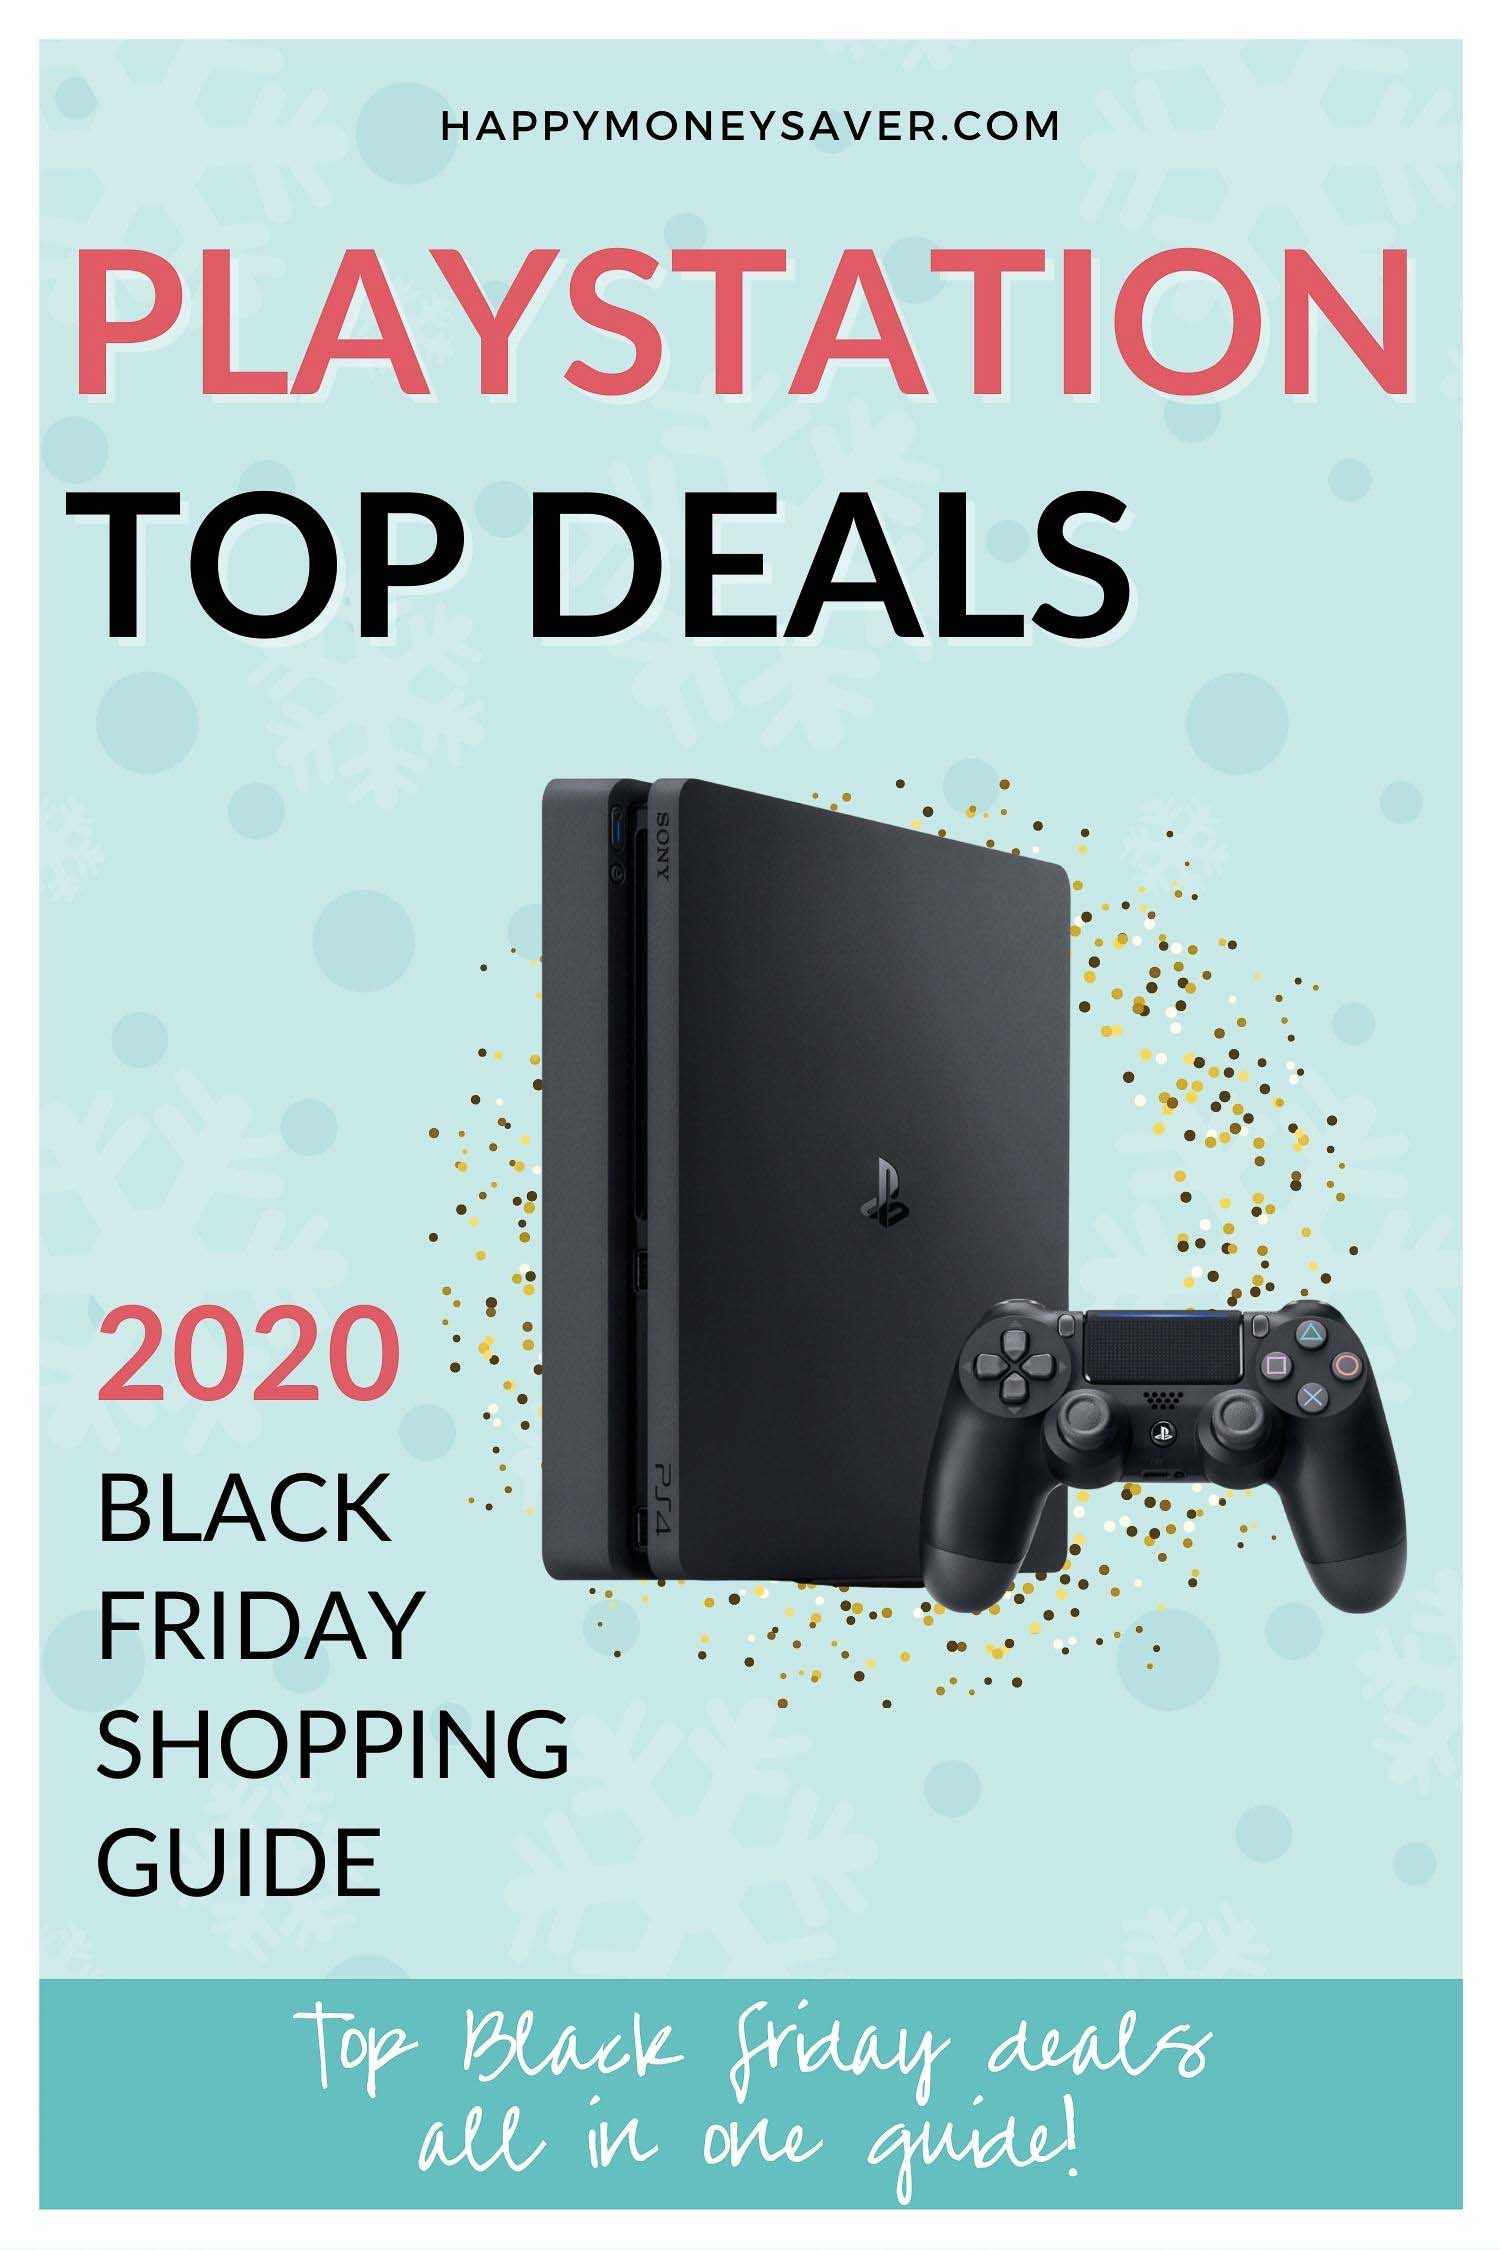 Graphic that says top Playstation deals for black friday 2020. Image of playstation 5 with research by happymoneysaver.com.